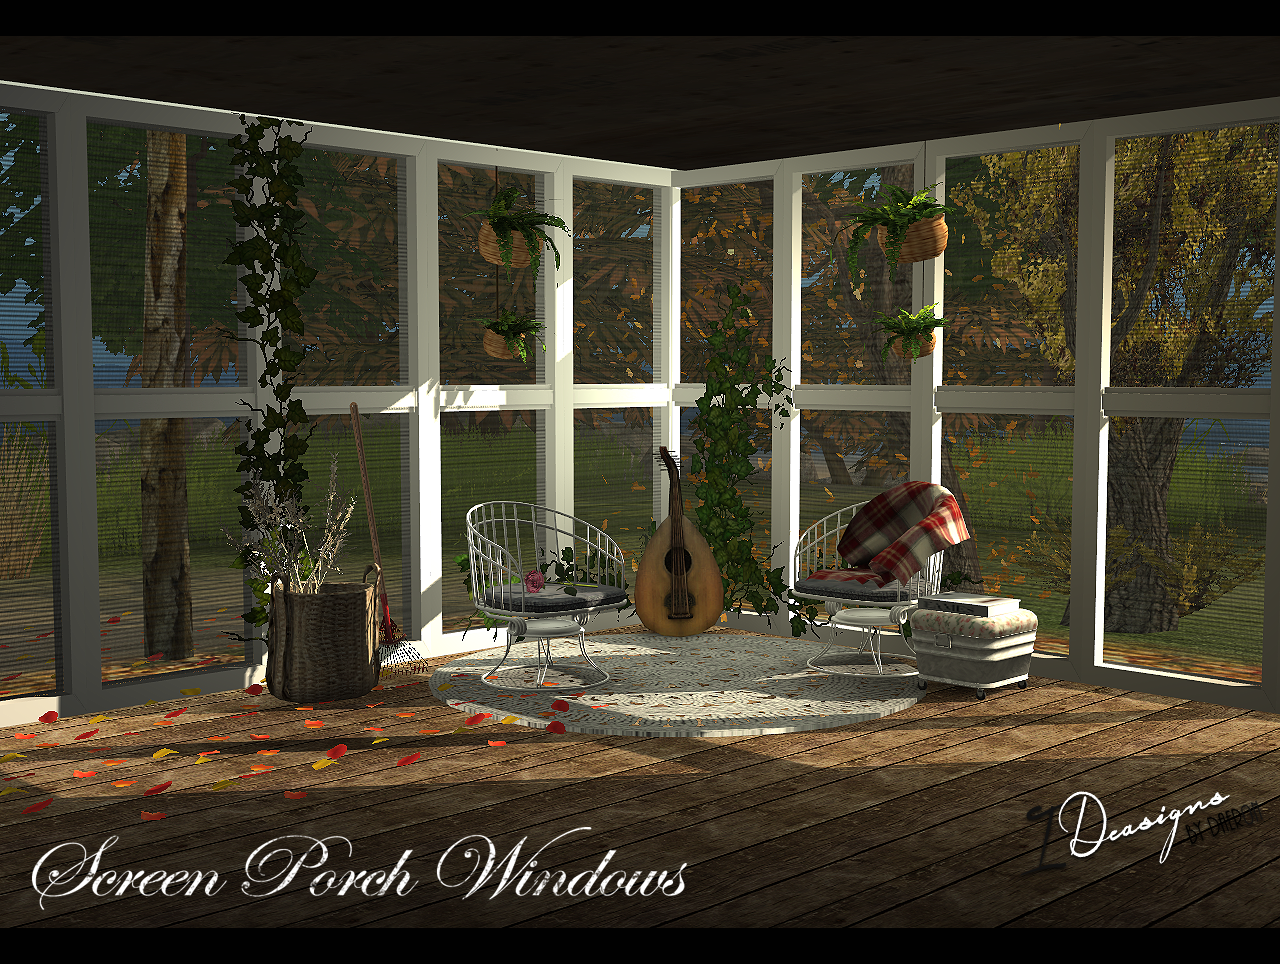 Screen Porch Windows - New Mesh by Daer0n